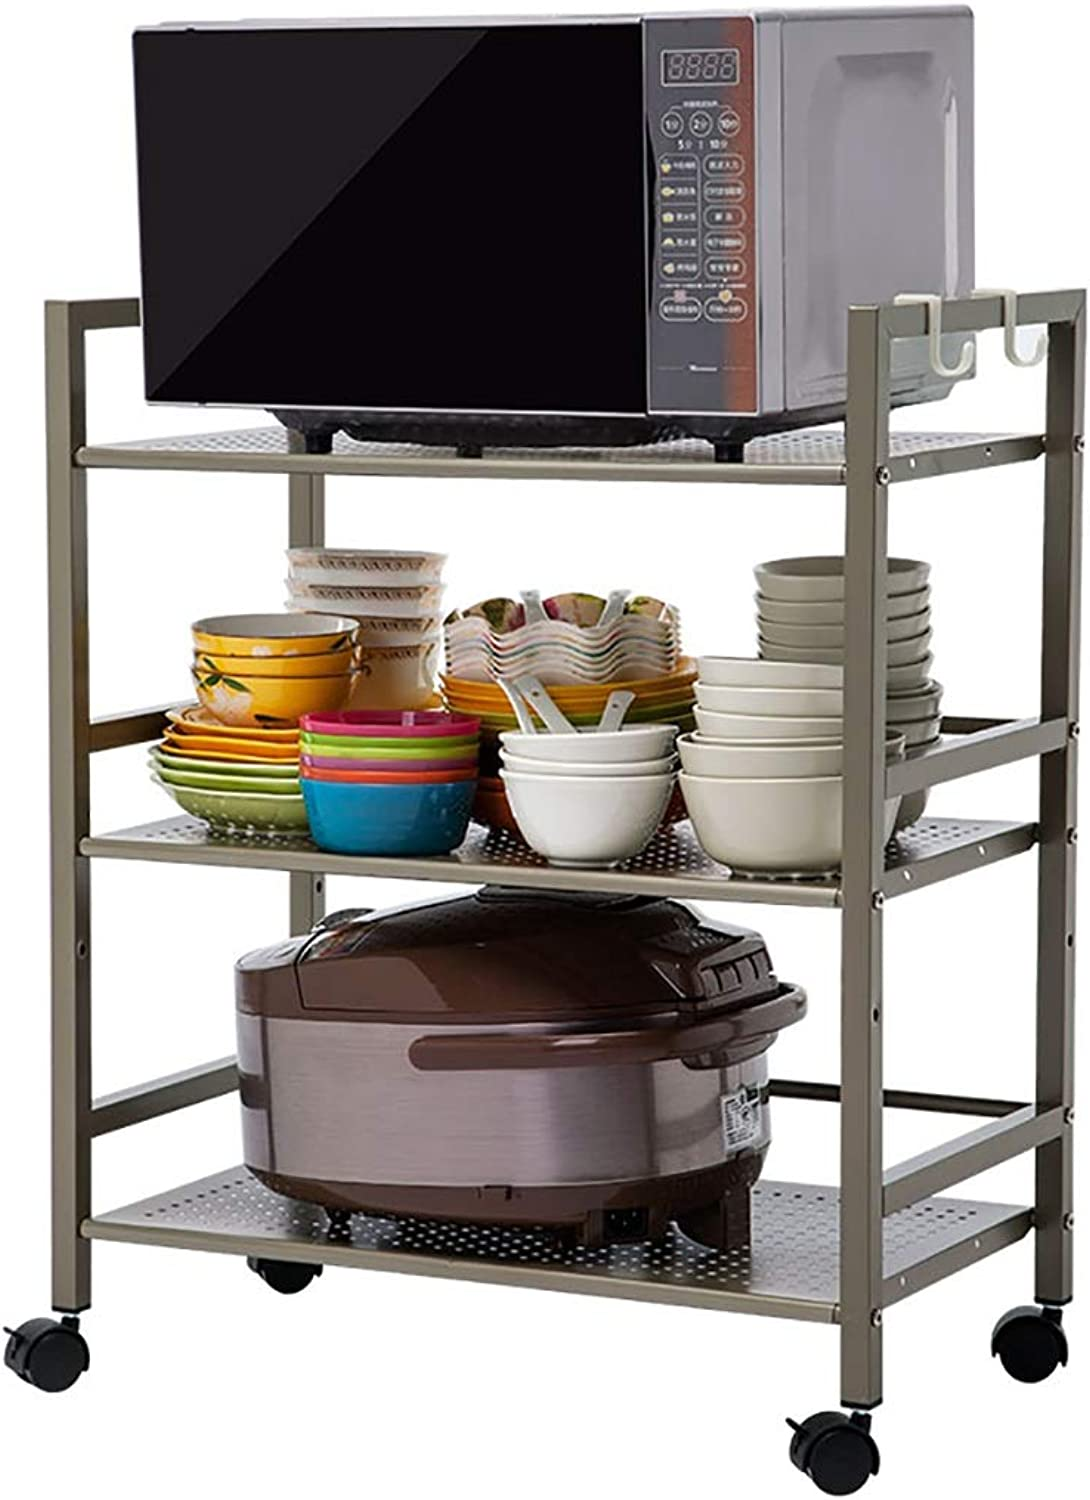 Shelf Small cart Landing Multi-Layer Pulley it can Move Kitchen Shelf Microwave Oven Rack Oven Rack